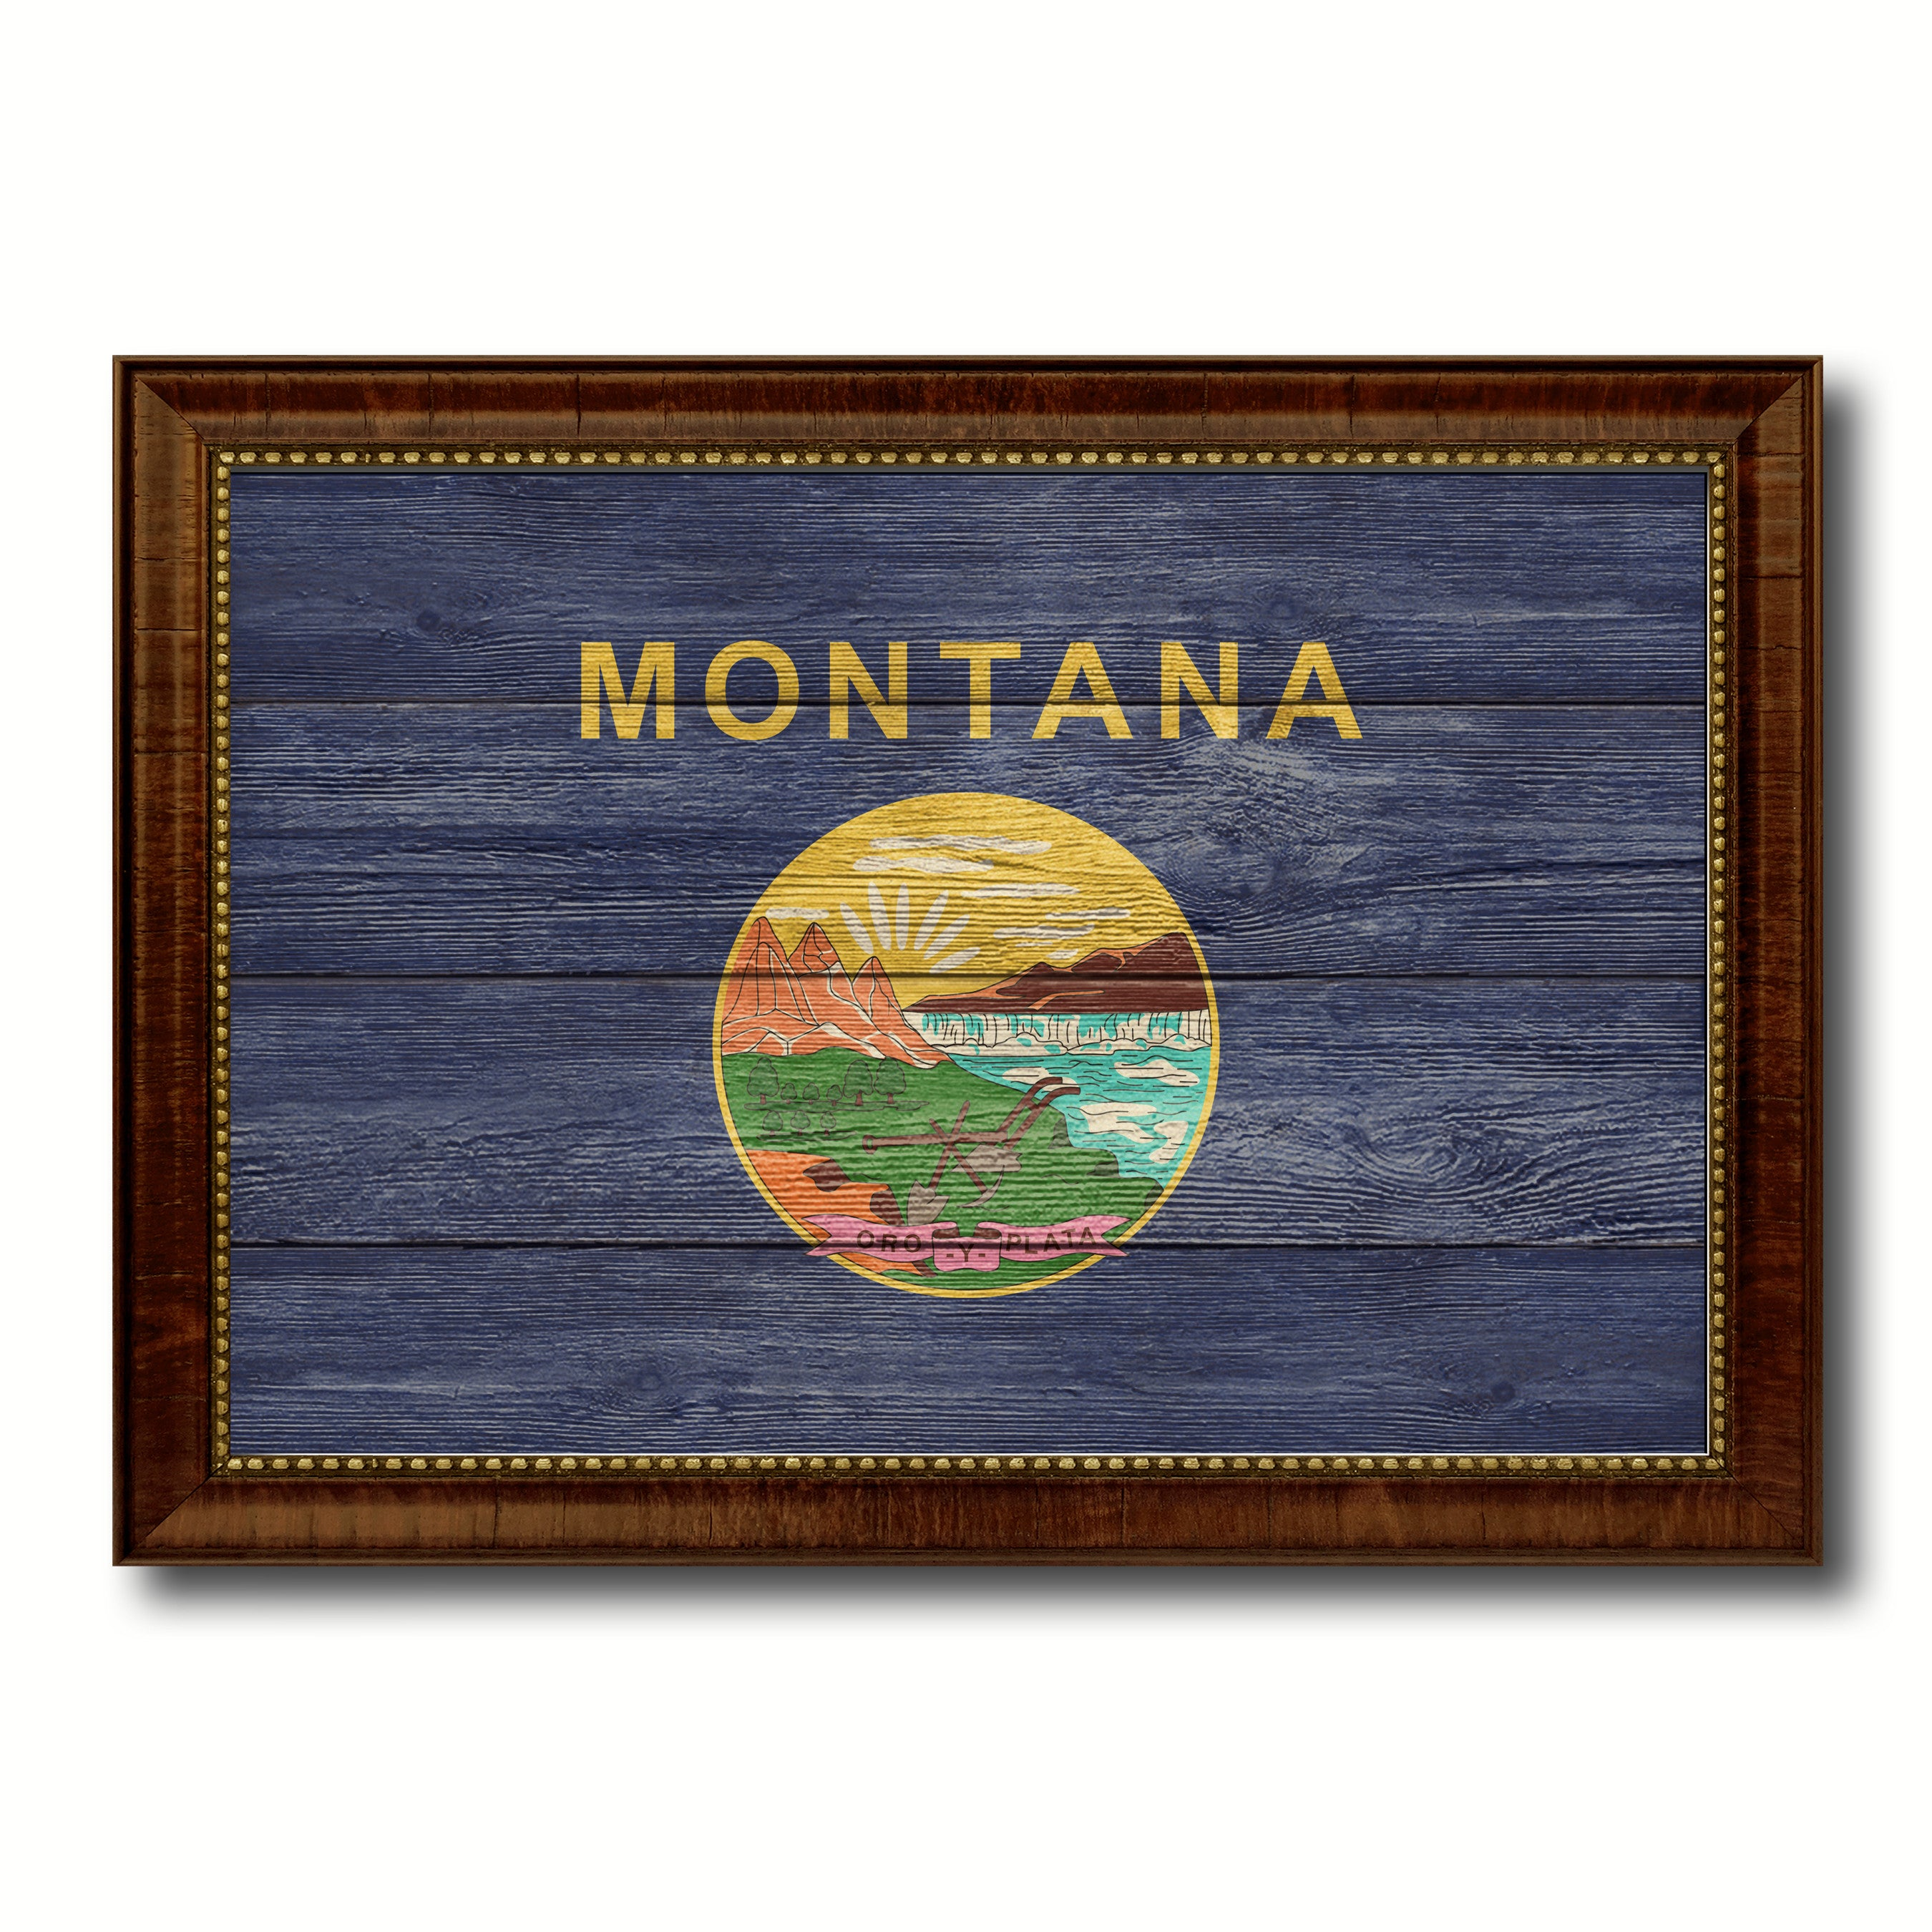 Montana State Flag Texture Canvas Print with Brown Picture Frame Gifts Home  Decor Wall Art Collectible Decoration